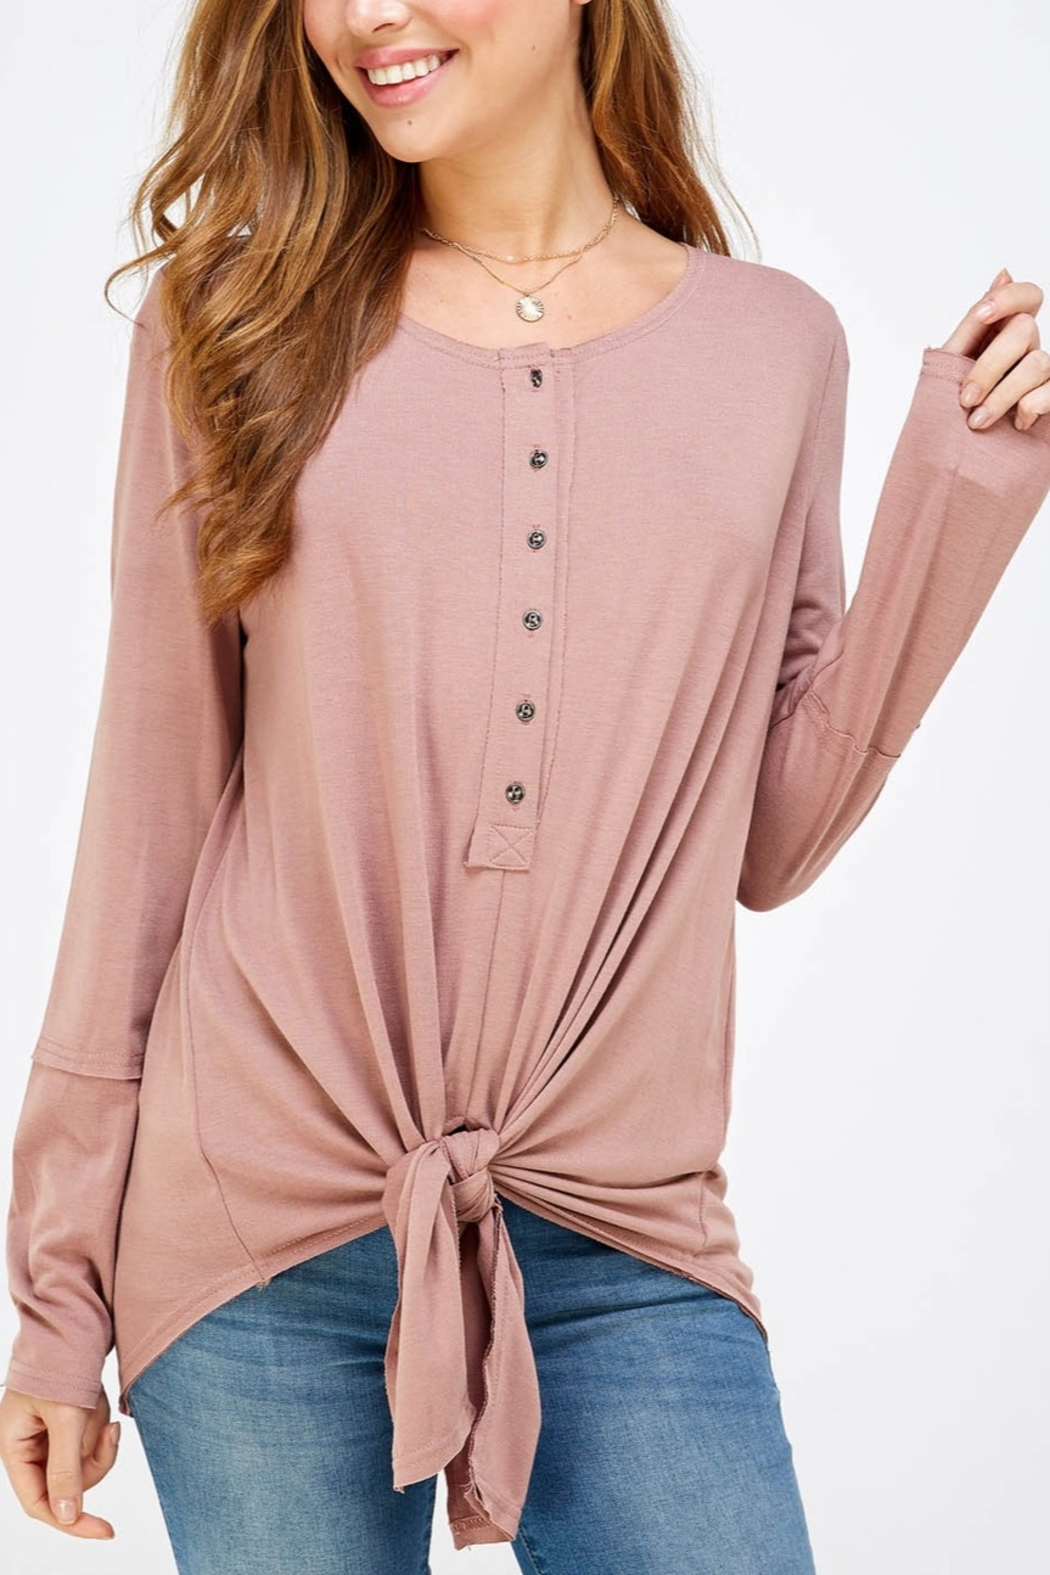 Lyn -Maree's 3/4 Button Down Knot Long Sleeve Tee - Main Image